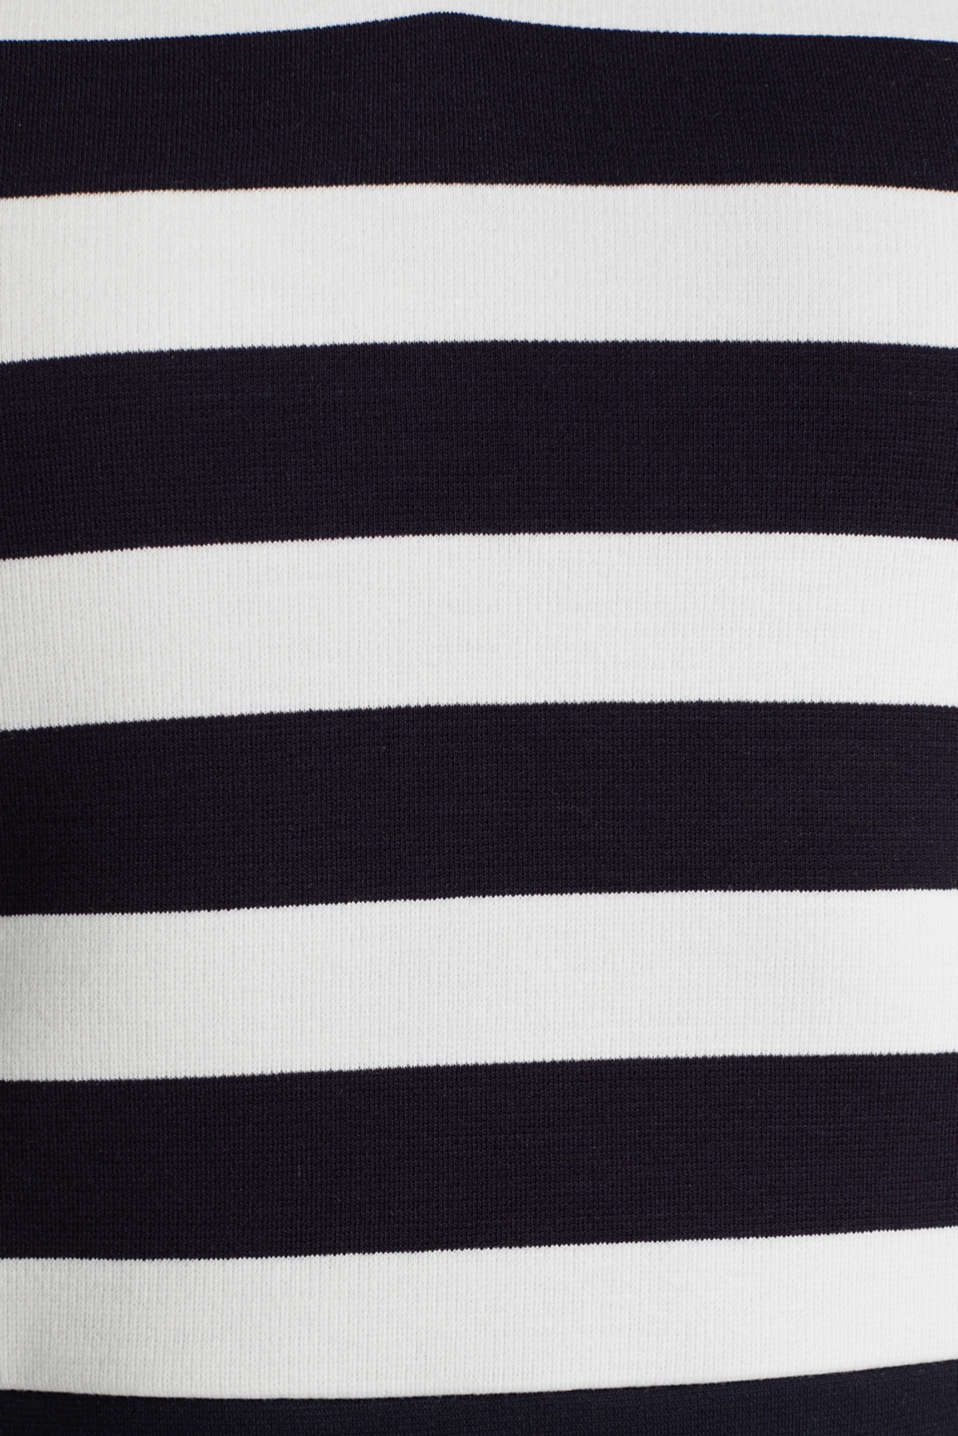 Sheath dress made of firm stretch jersey, NAVY, detail image number 4